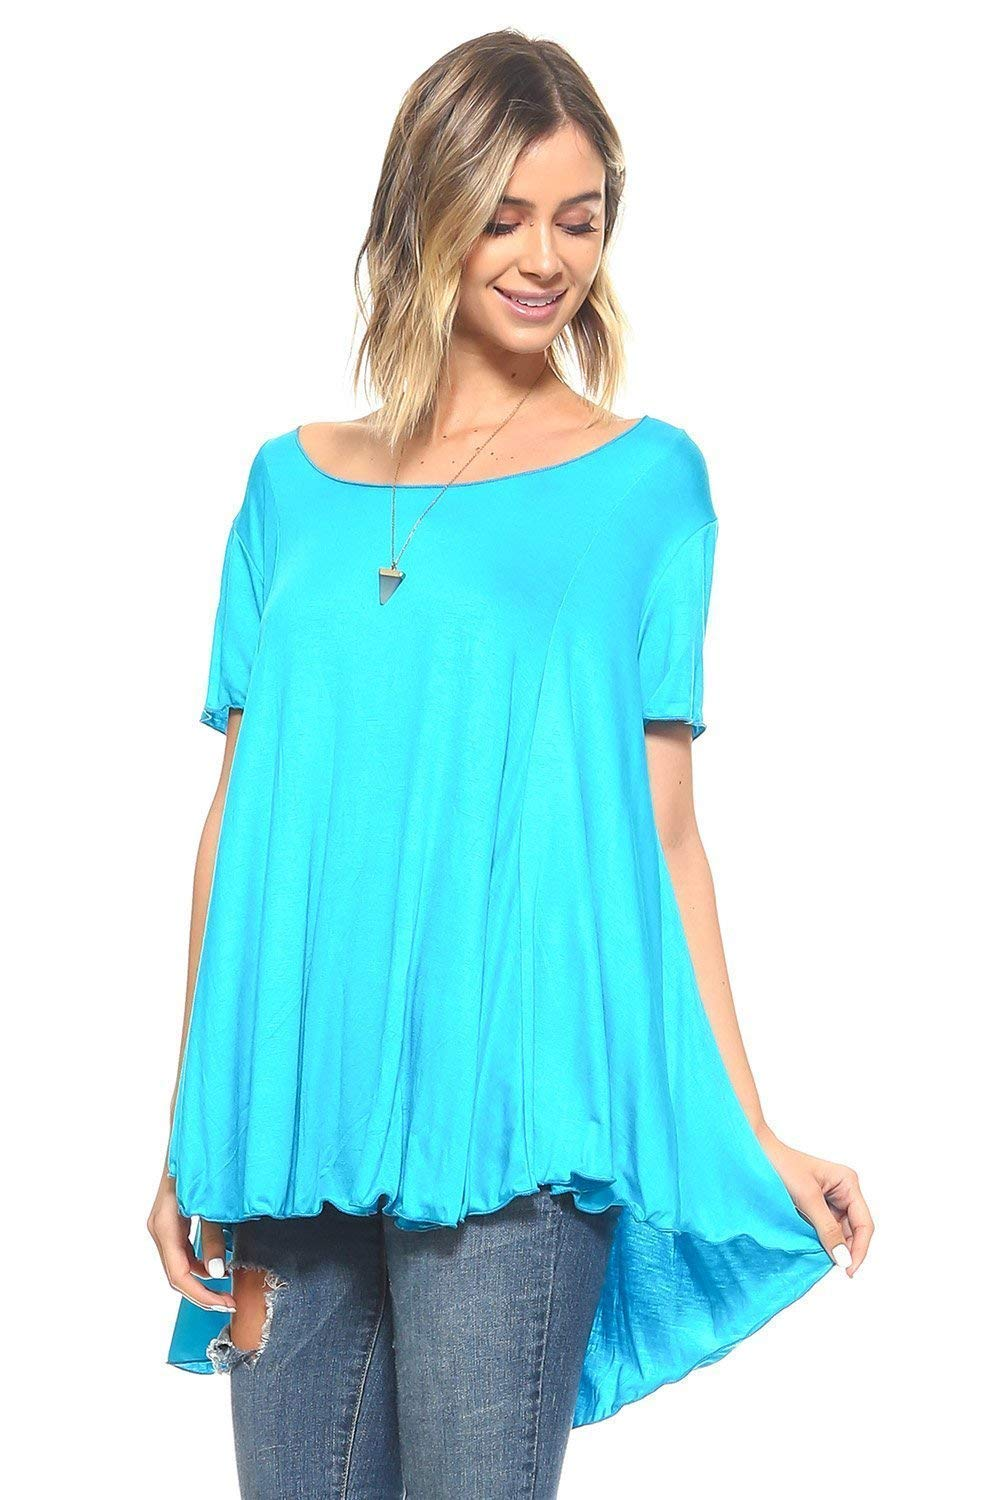 fce9dfb468e Breeze through your day in this top featuring a hi-low hem for a modern  twist on a classic.